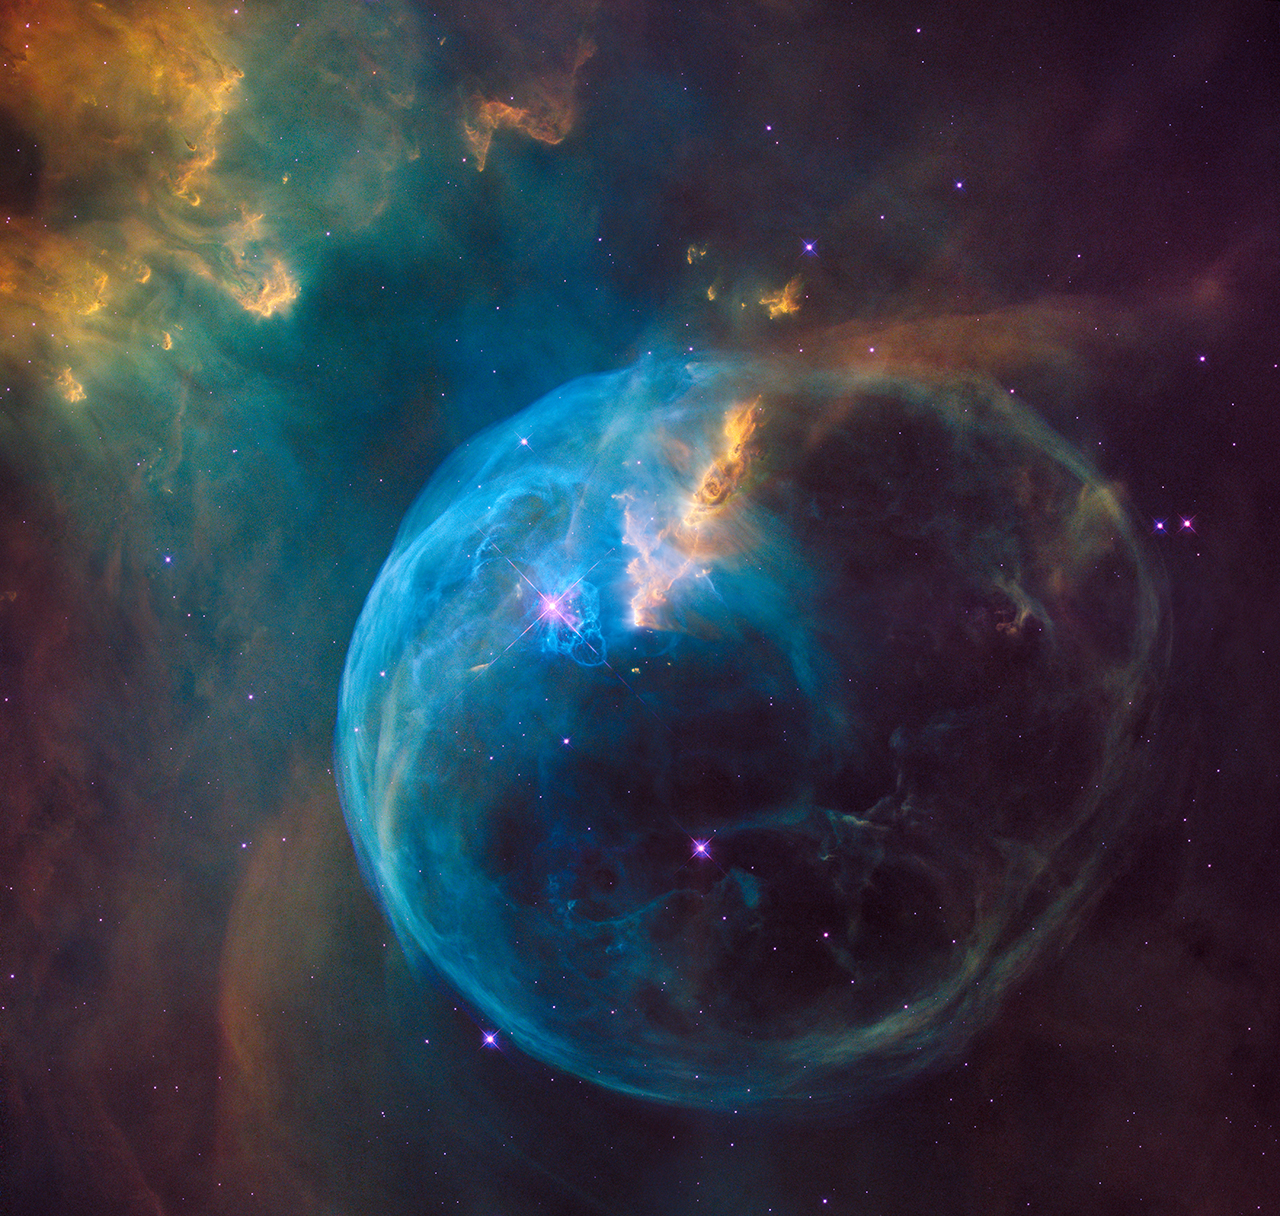 Apod 2016 april 22 ngc 7635 the bubble nebula clicking on the picture will download the highest resolution version available altavistaventures Images